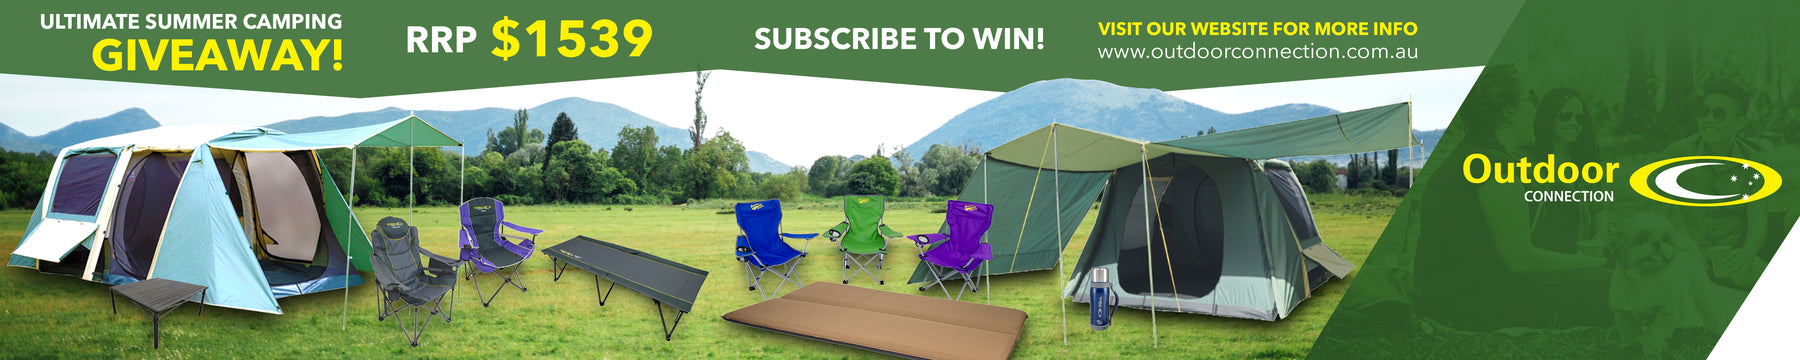 Ultimate Summer Camping Giveaway